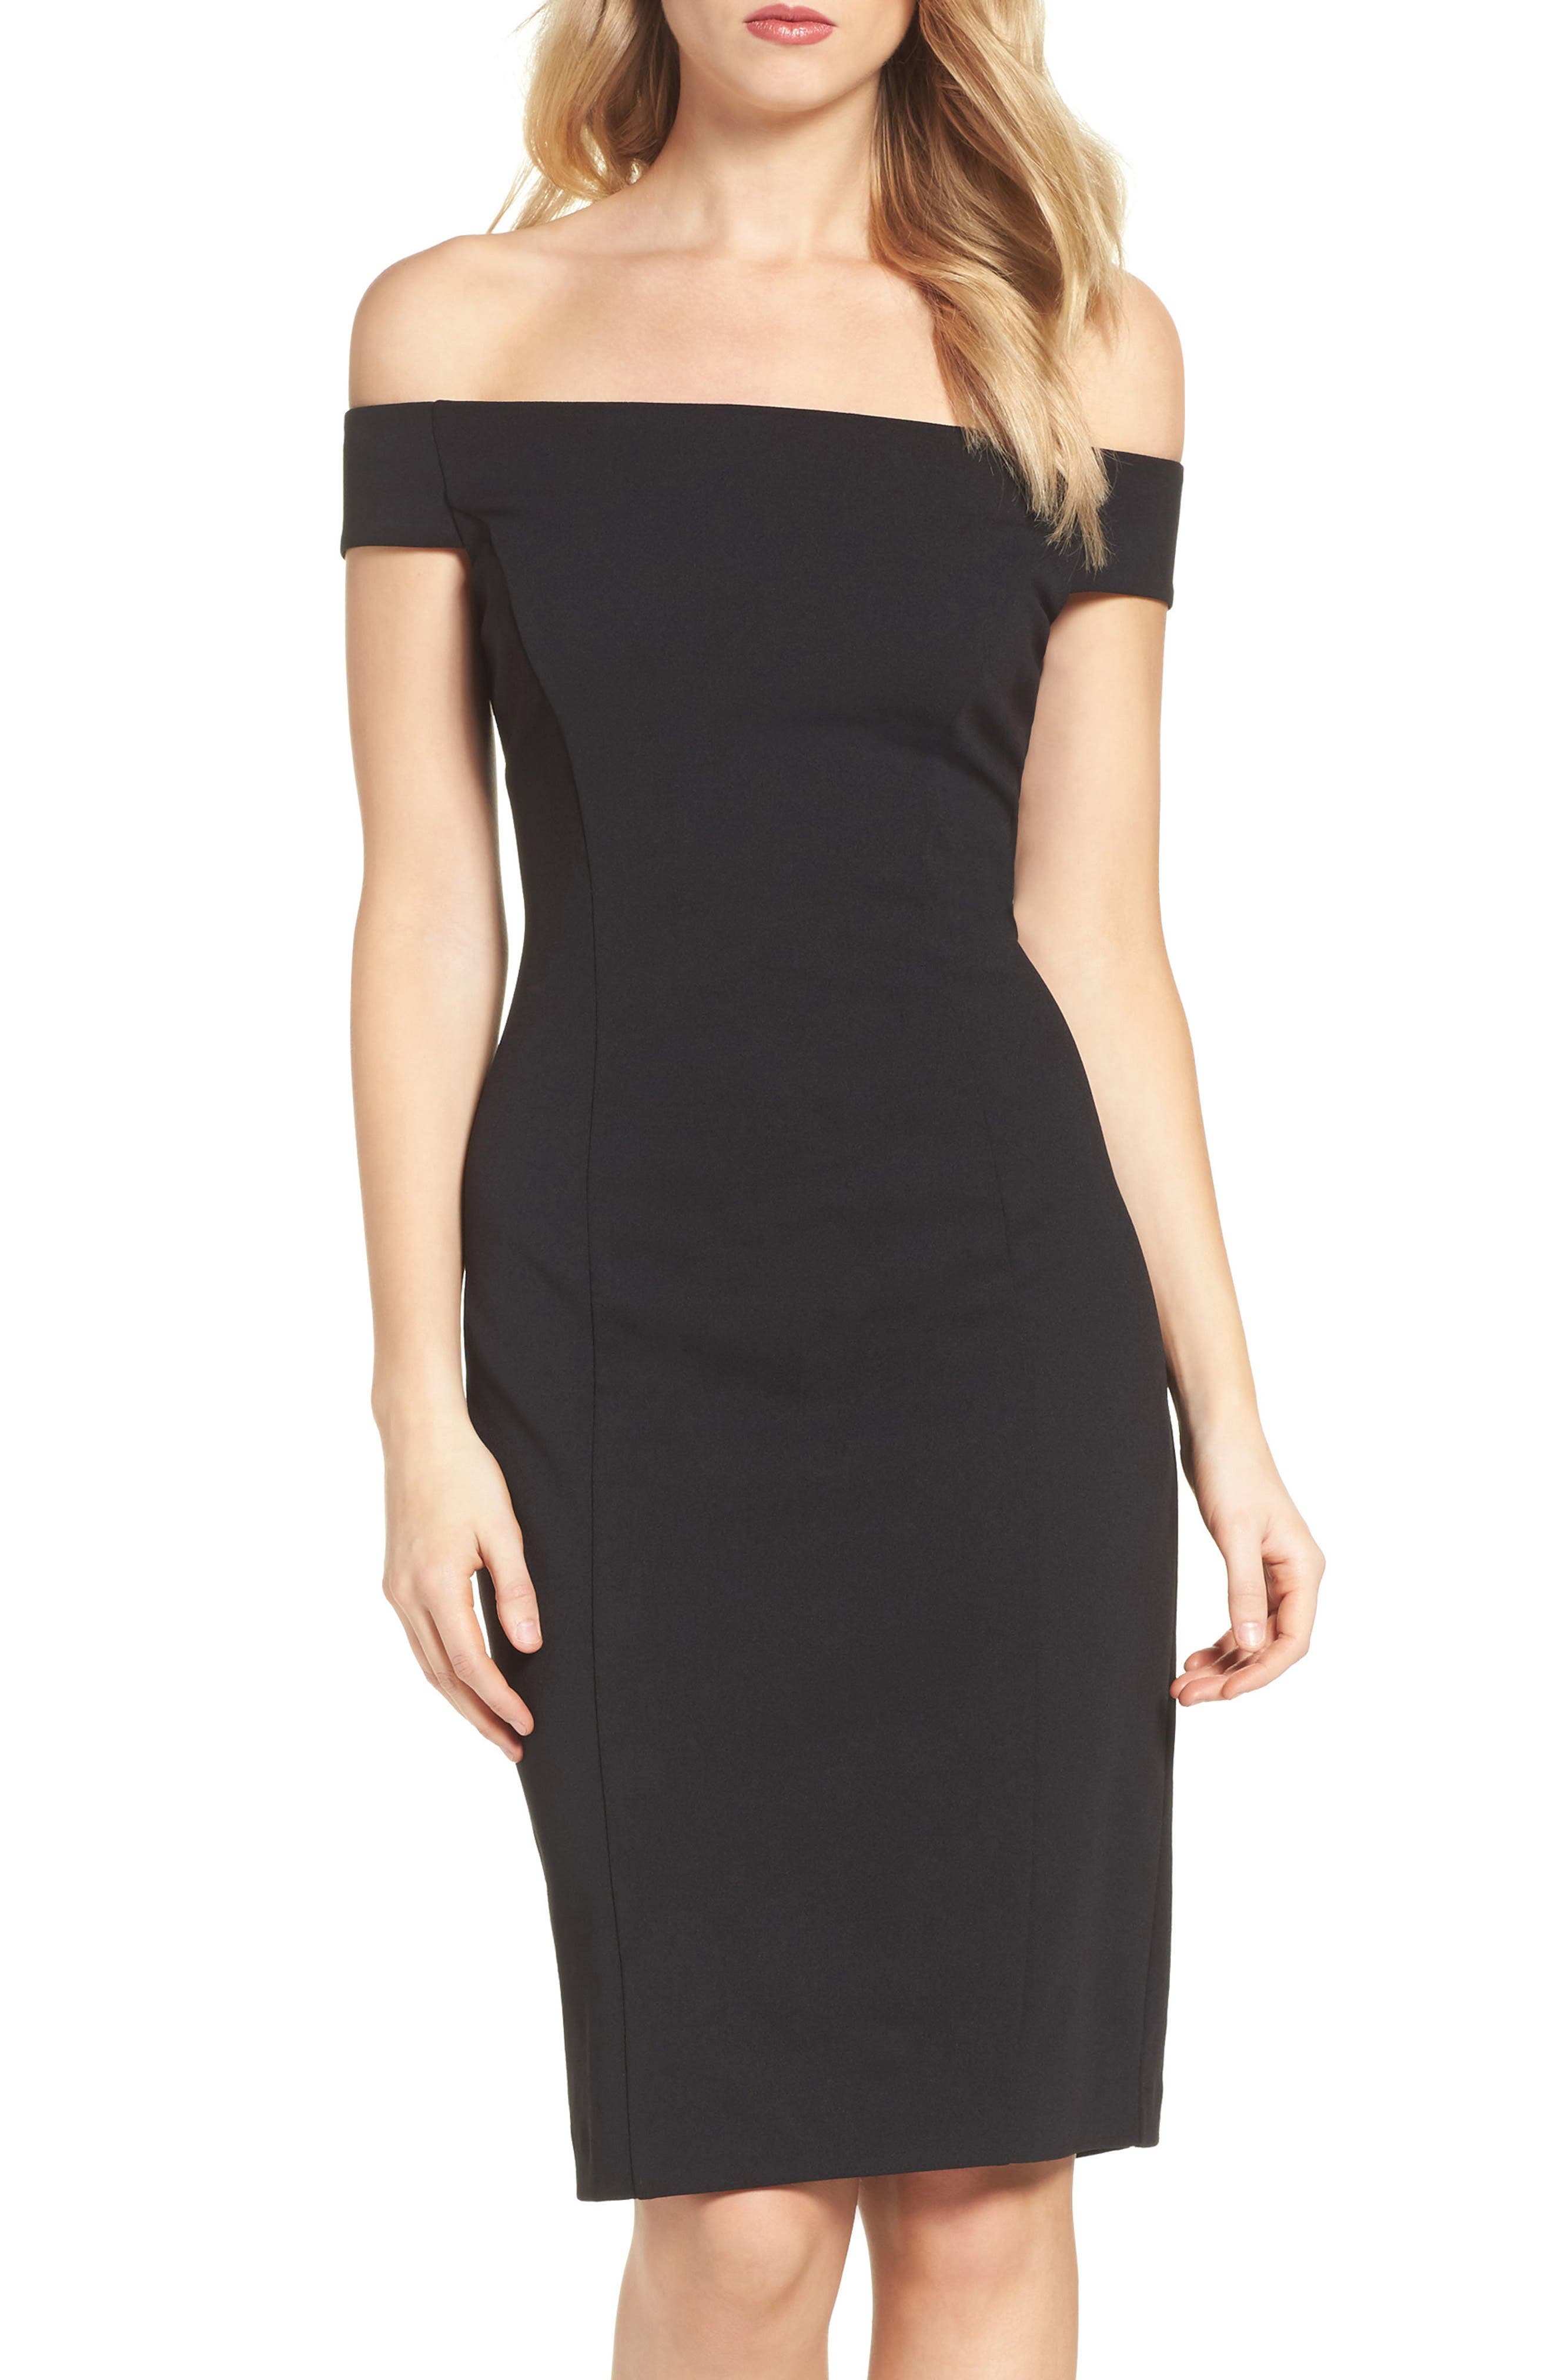 Alternate Image 1 Selected - Vince Camuto Crepe Sheath Dress (Regular & Petite)